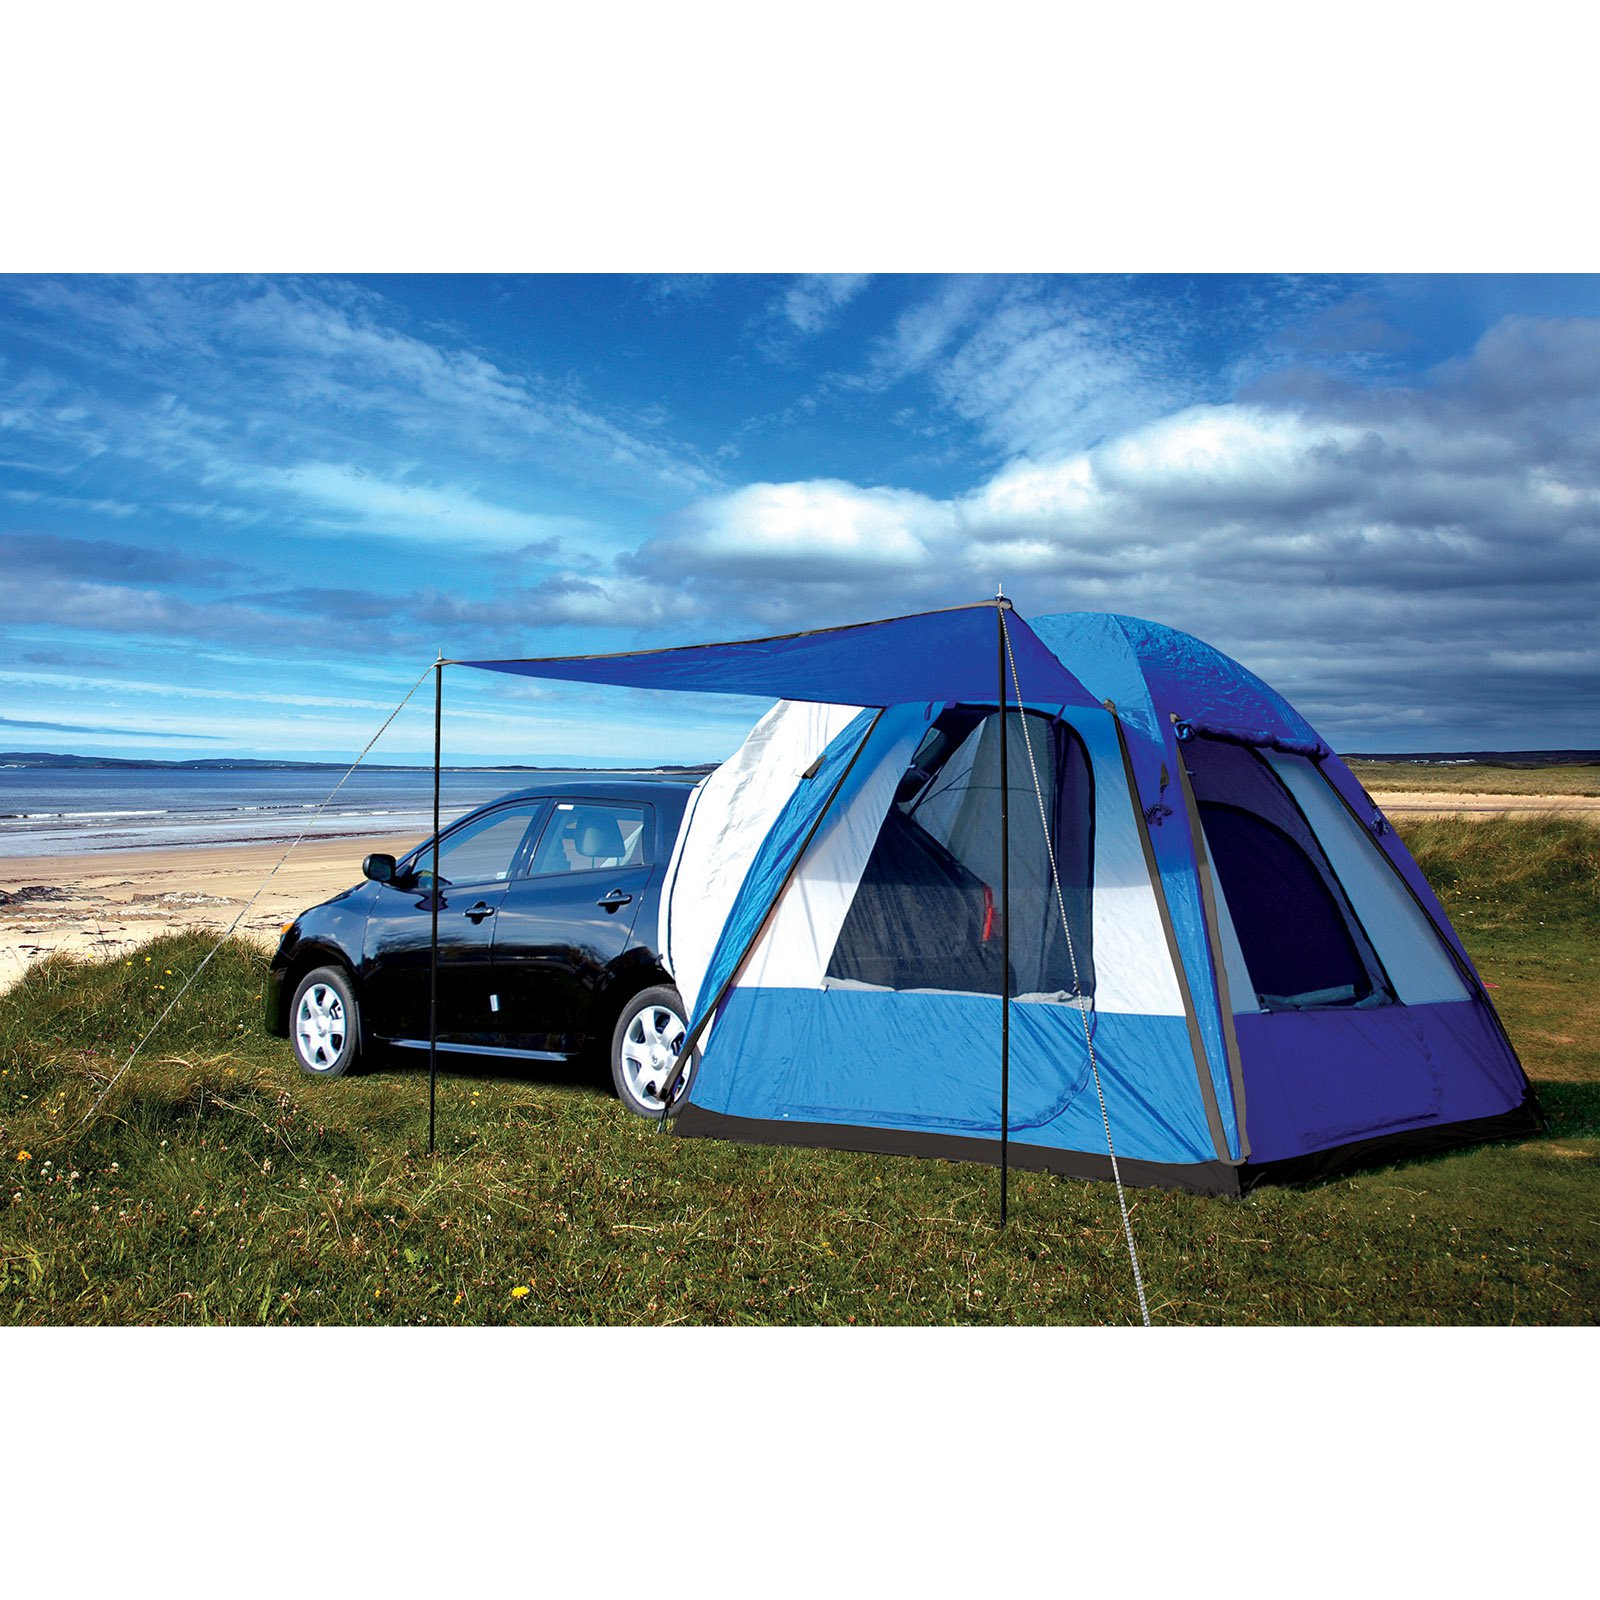 Napier Outdoors Sportz #86000 4 Person Dome-To-Go Tent  sc 1 st  Walmart & Napier Outdoors Sportz #86000 4 Person Dome-To-Go Tent - Walmart.com